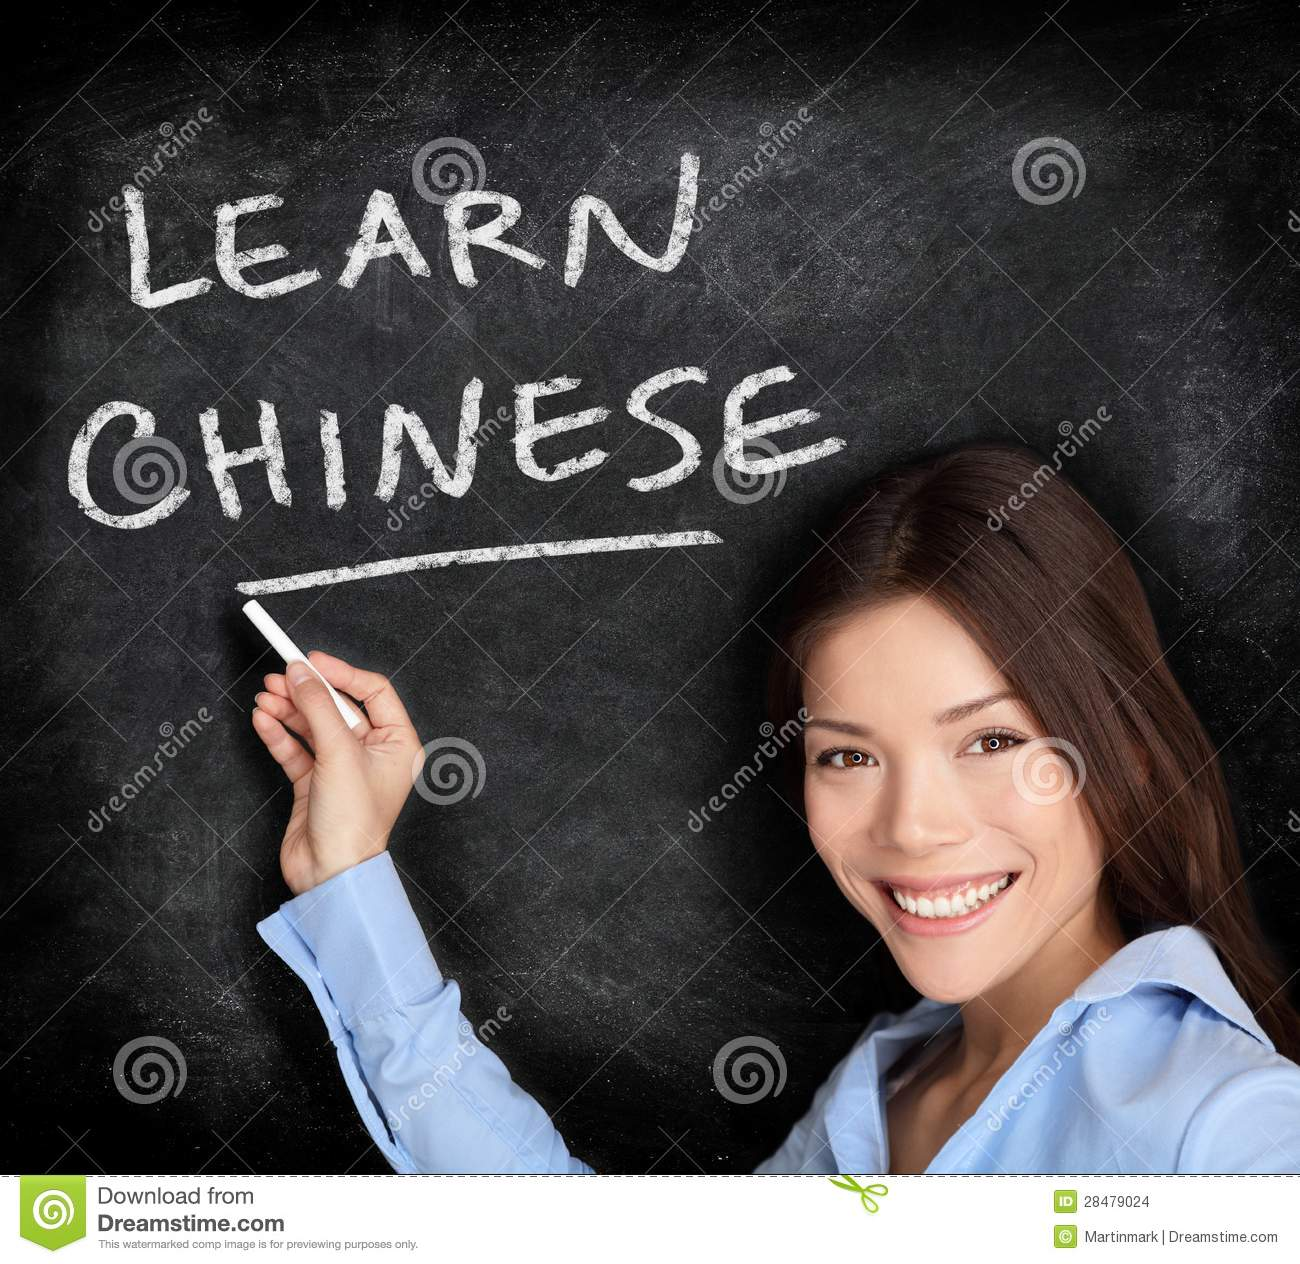 Learn Chinese online | Free Chinese lessons